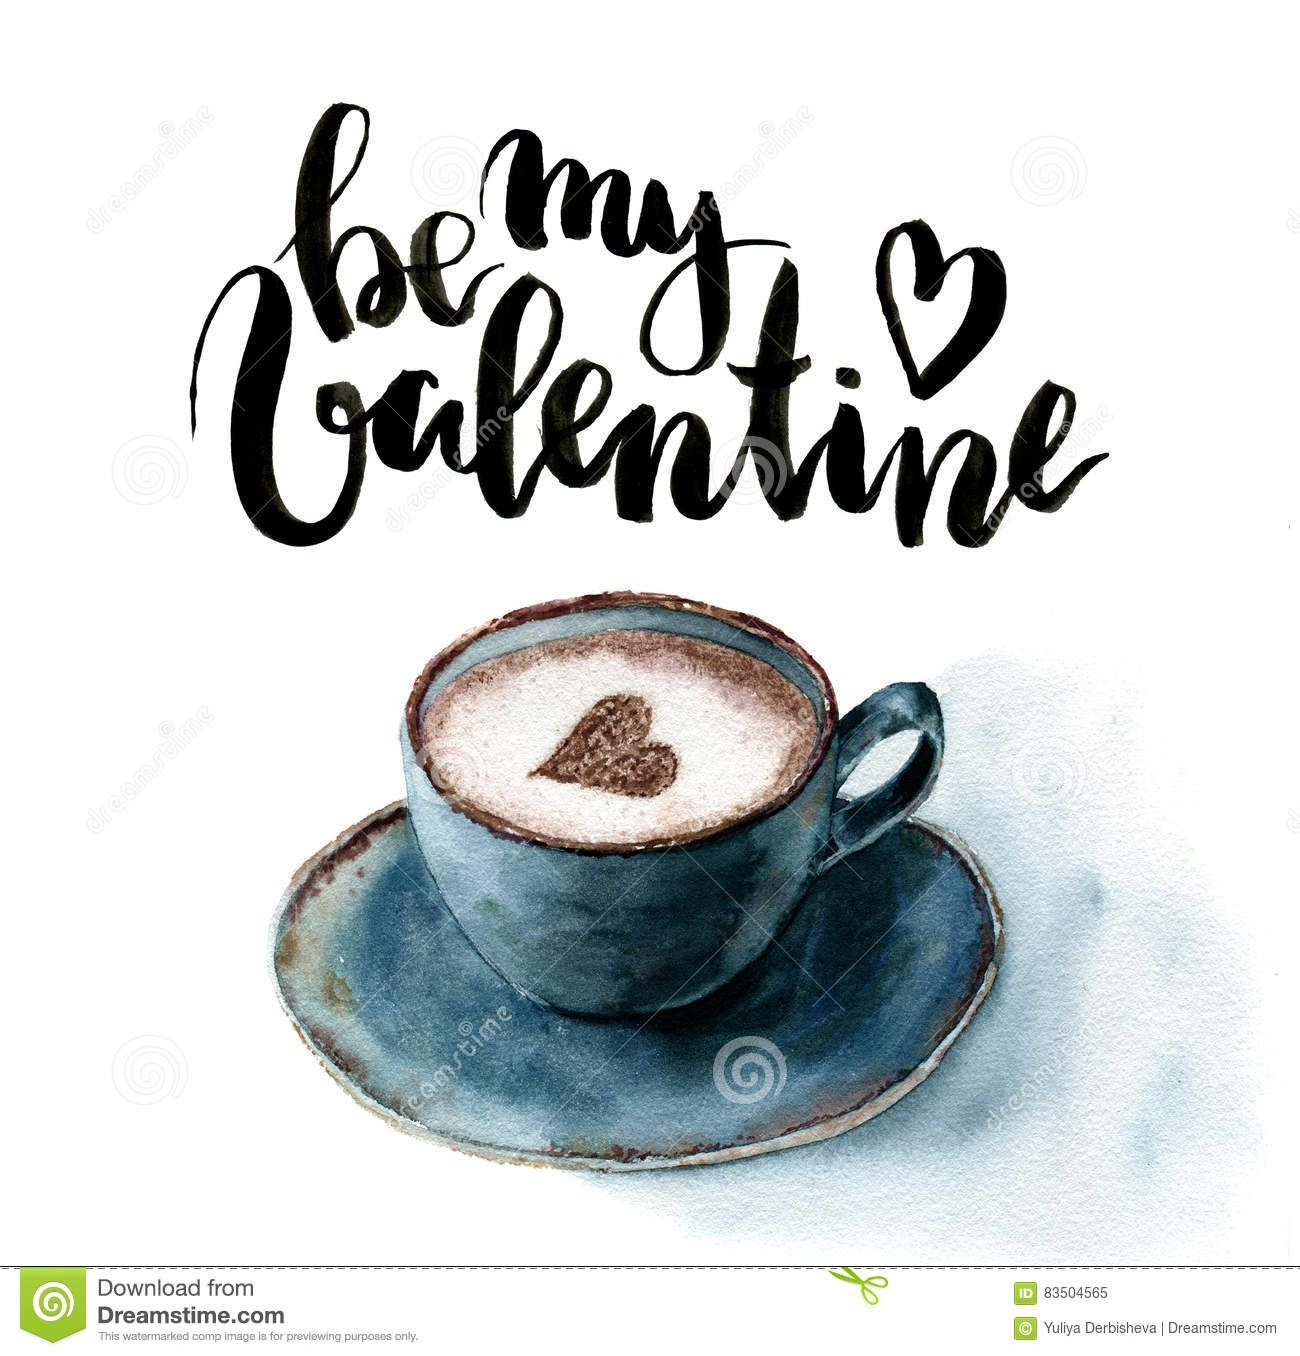 Pin by Dreamstime Stock Photos on Valentine's Day in 2020